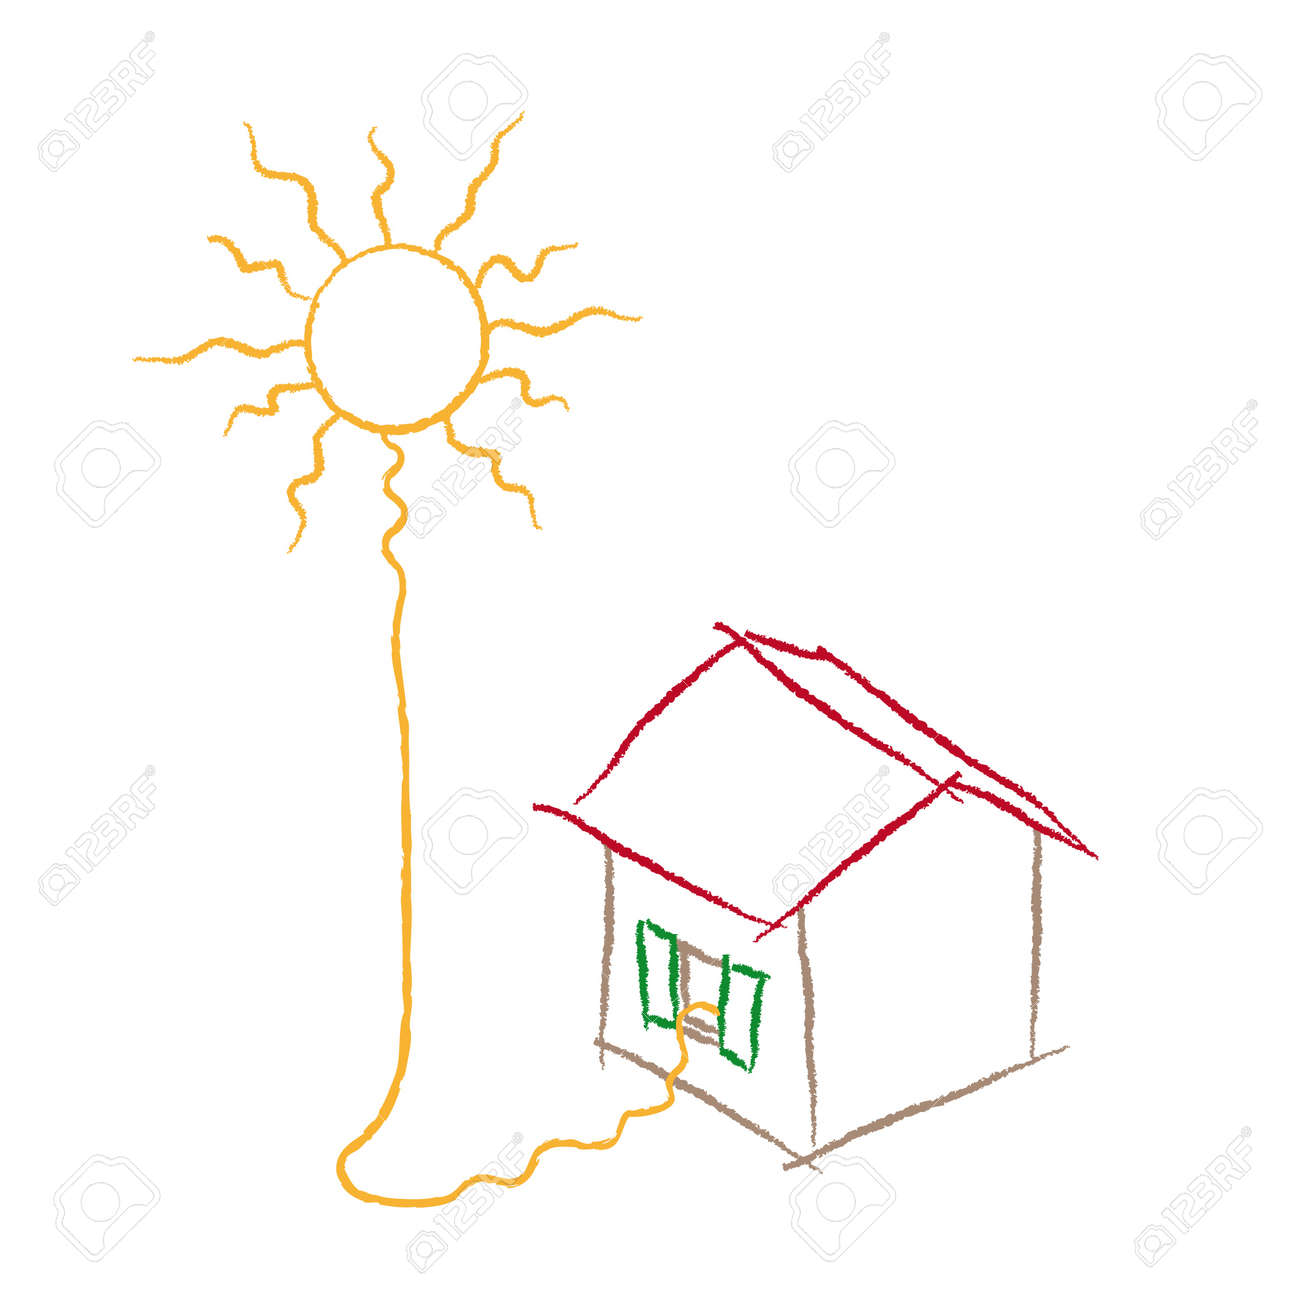 solar energy Stock Vector - 10736710